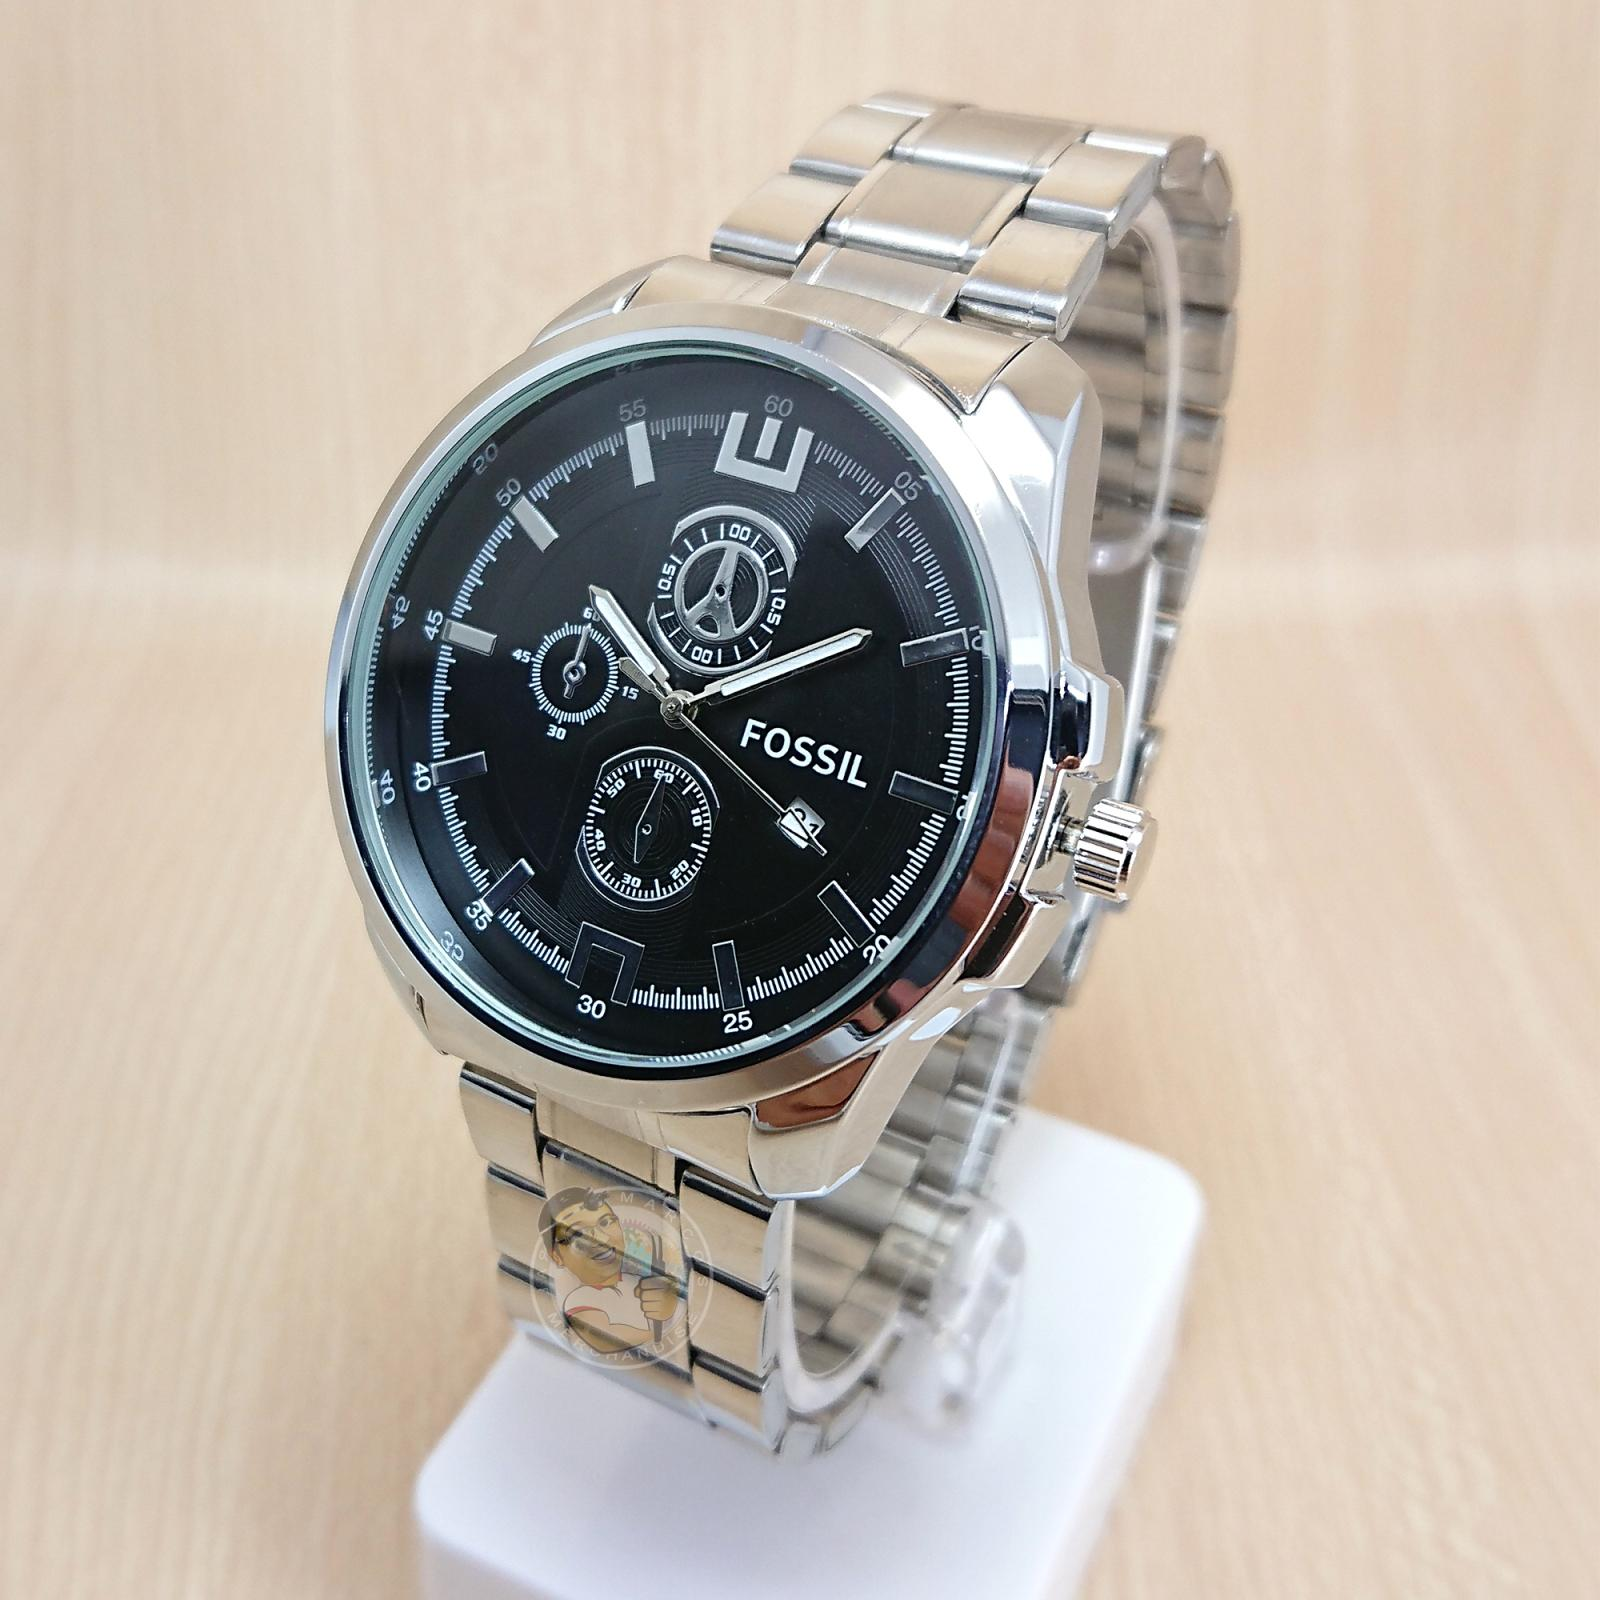 c6138d8712d Fossil Philippines  Fossil price list - Fossil Watches for Men ...